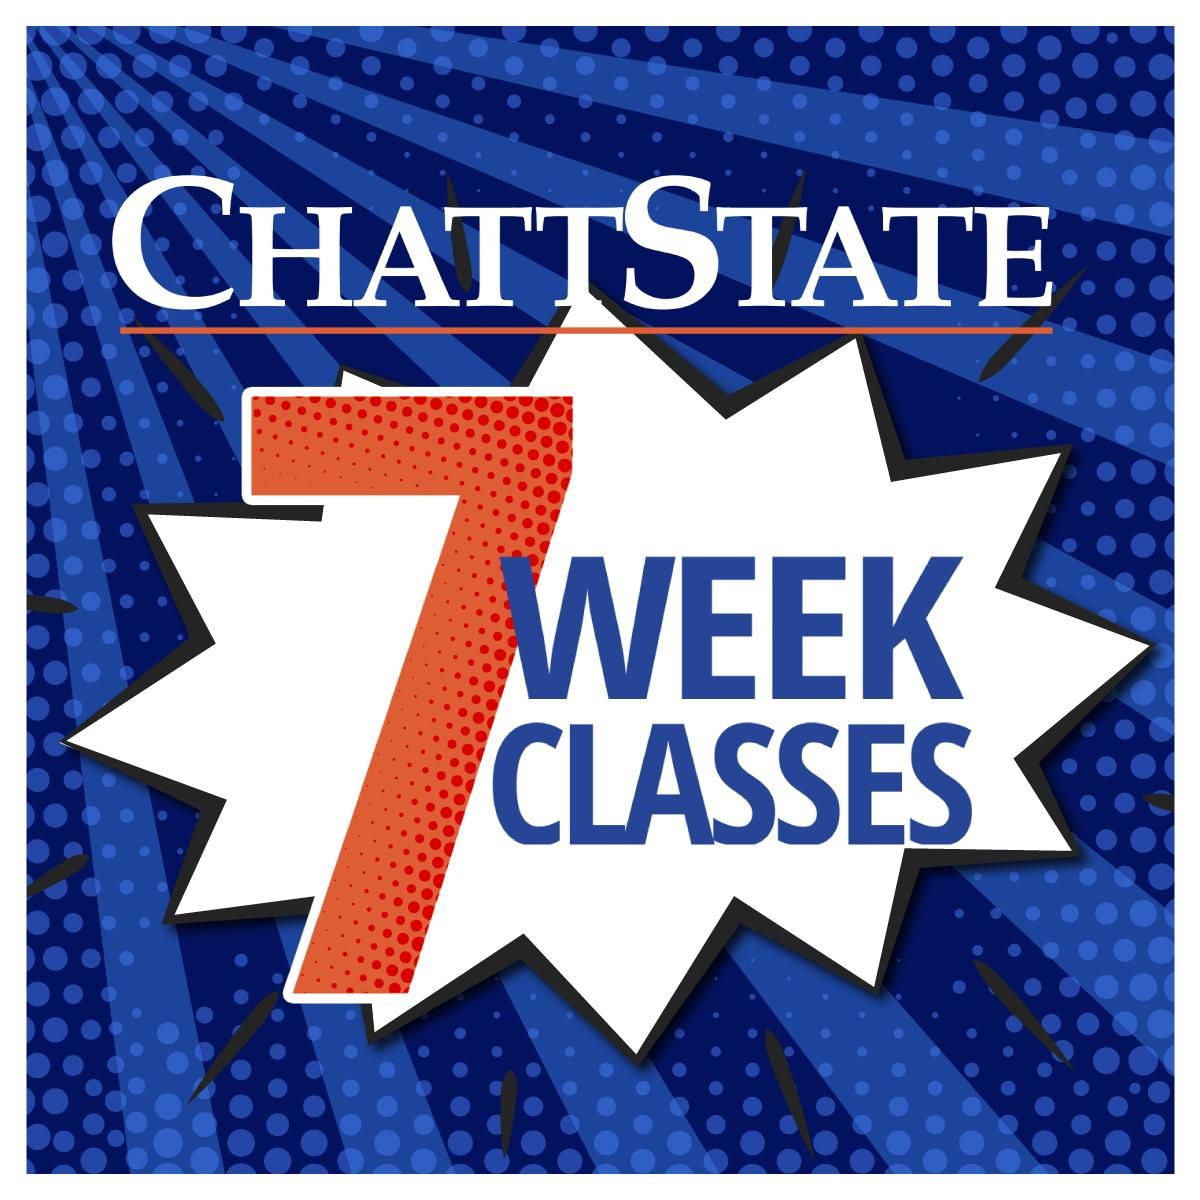 ChattState 7 Week Classes on a blue square with comic elements.